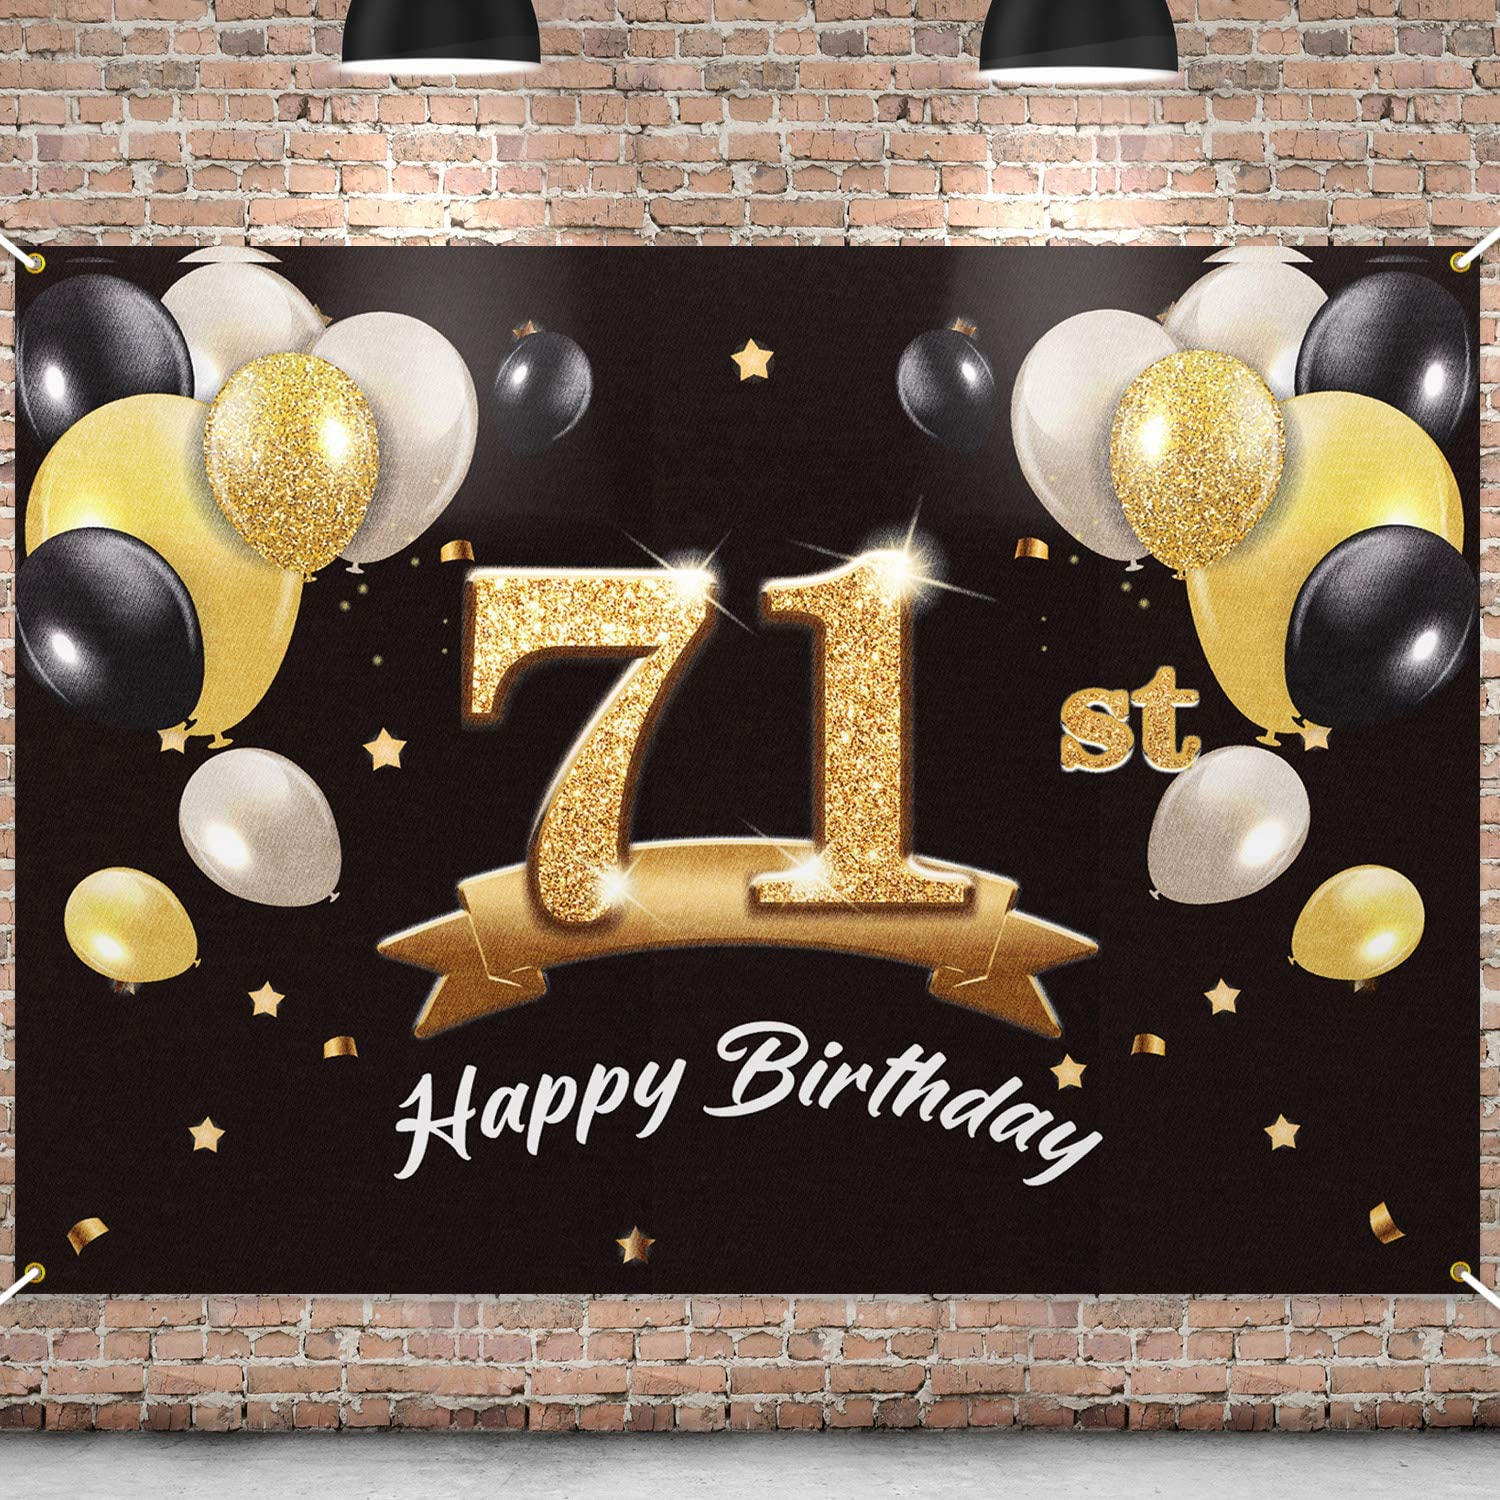 PAKBOOM Happy 71st Our shop most popular Birthday Banner - 71 Inventory cleanup selling sale Backdrop Party